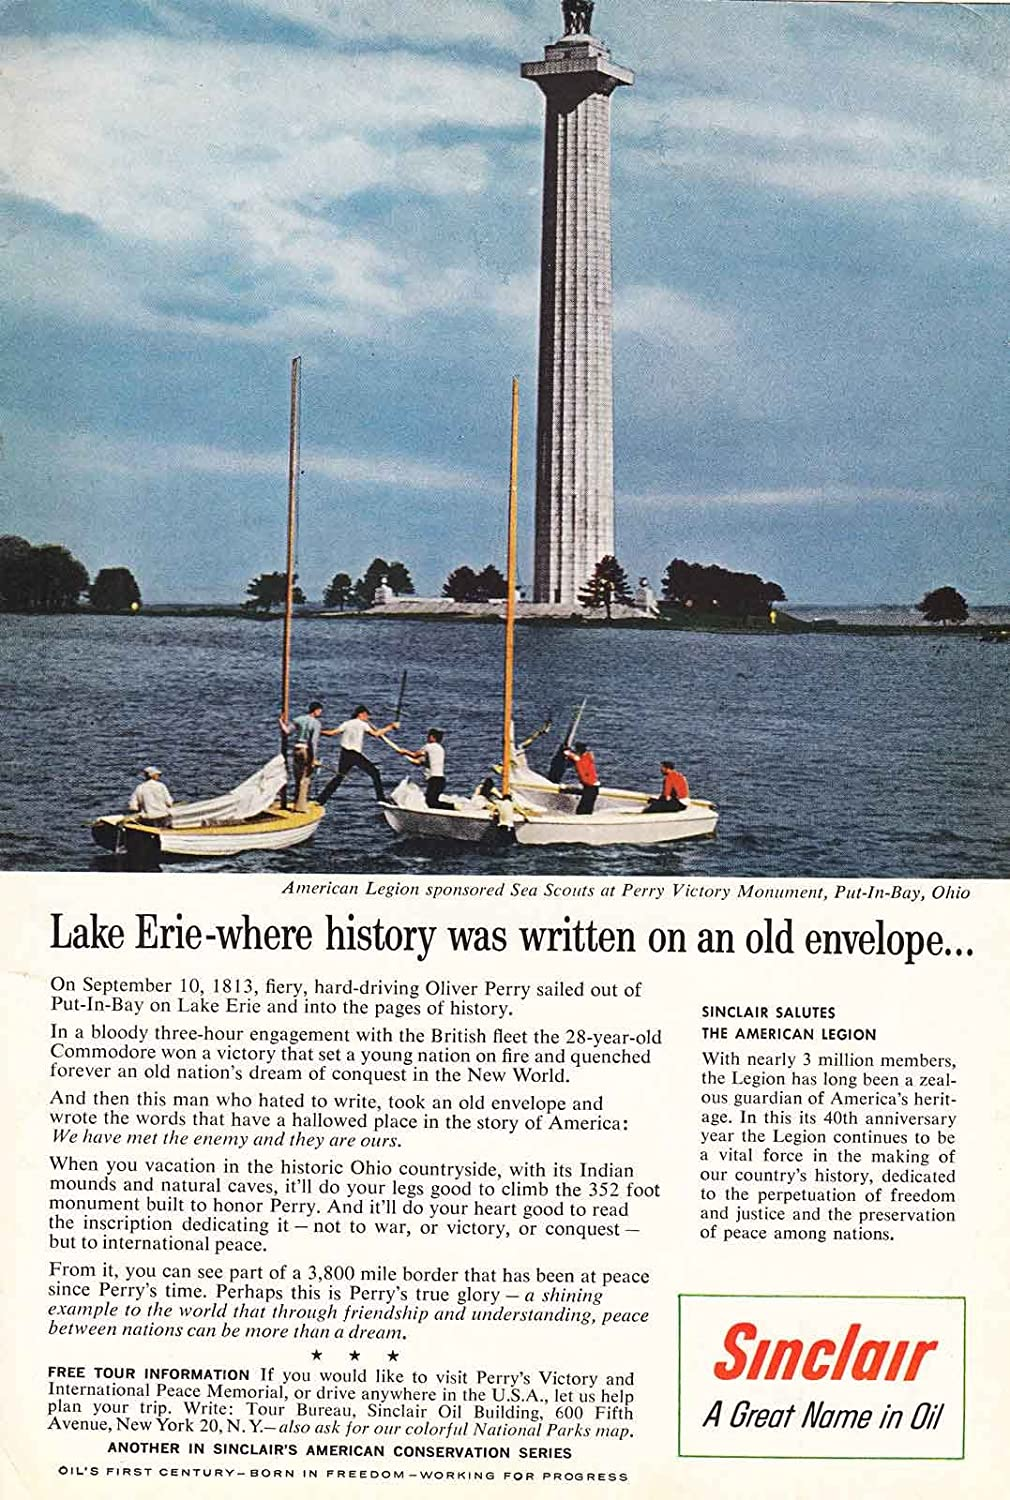 Amazon.com: 1959 Sinclair: Lake Erie, Perry Victory Monument ...